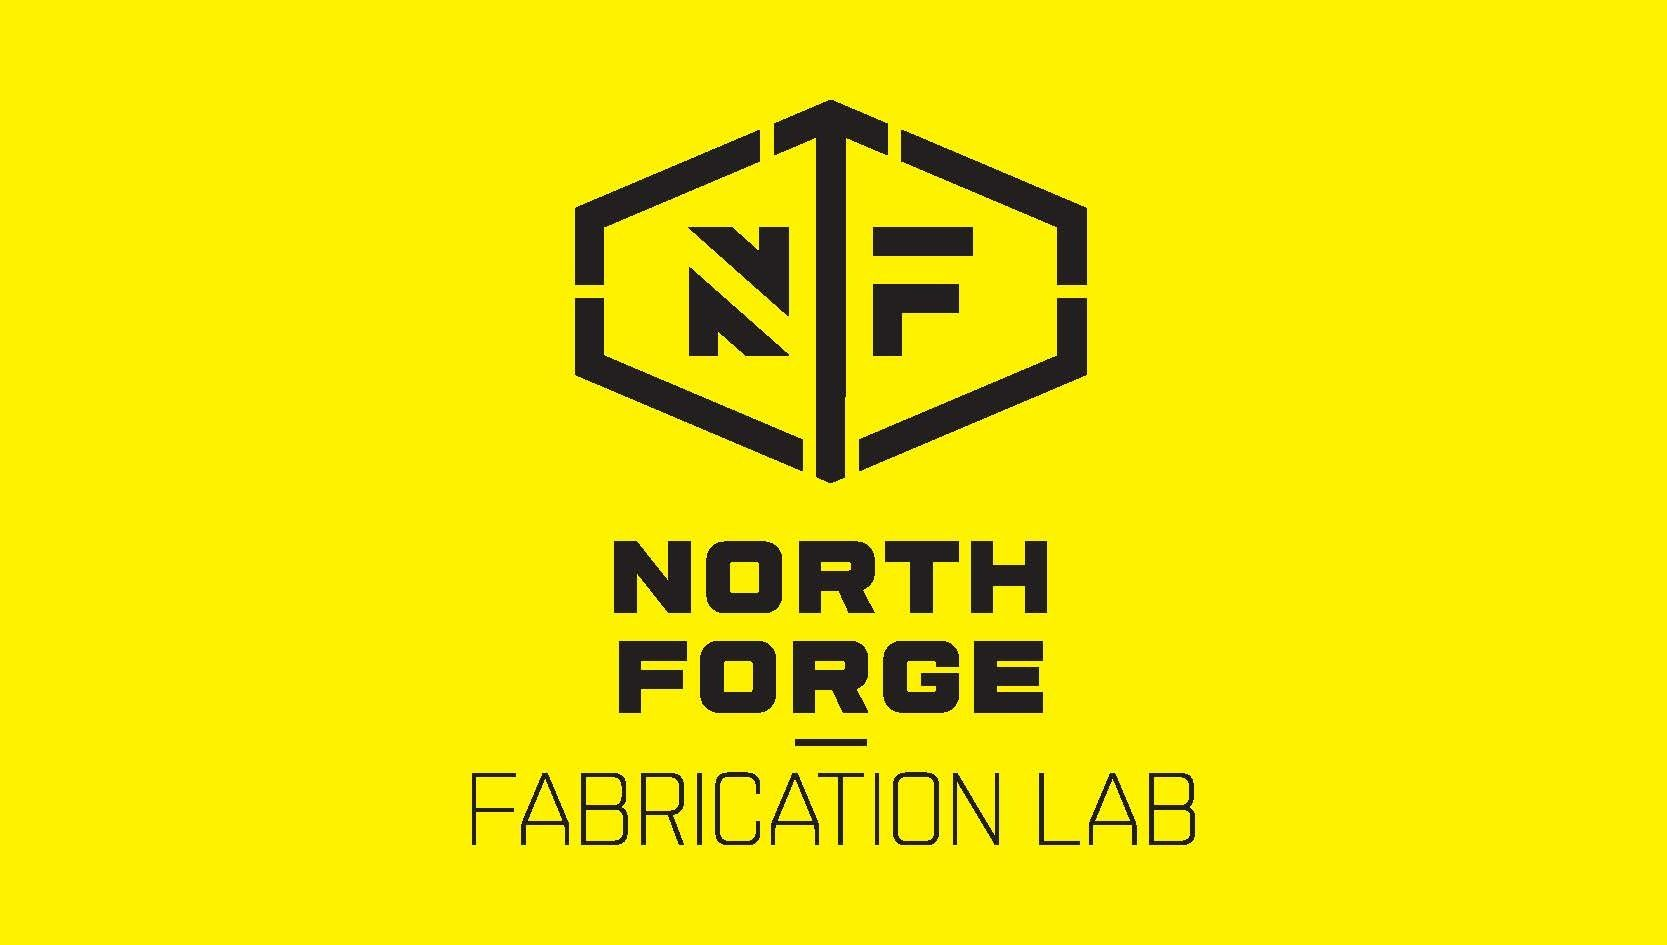 North Forge Fabrication Lab